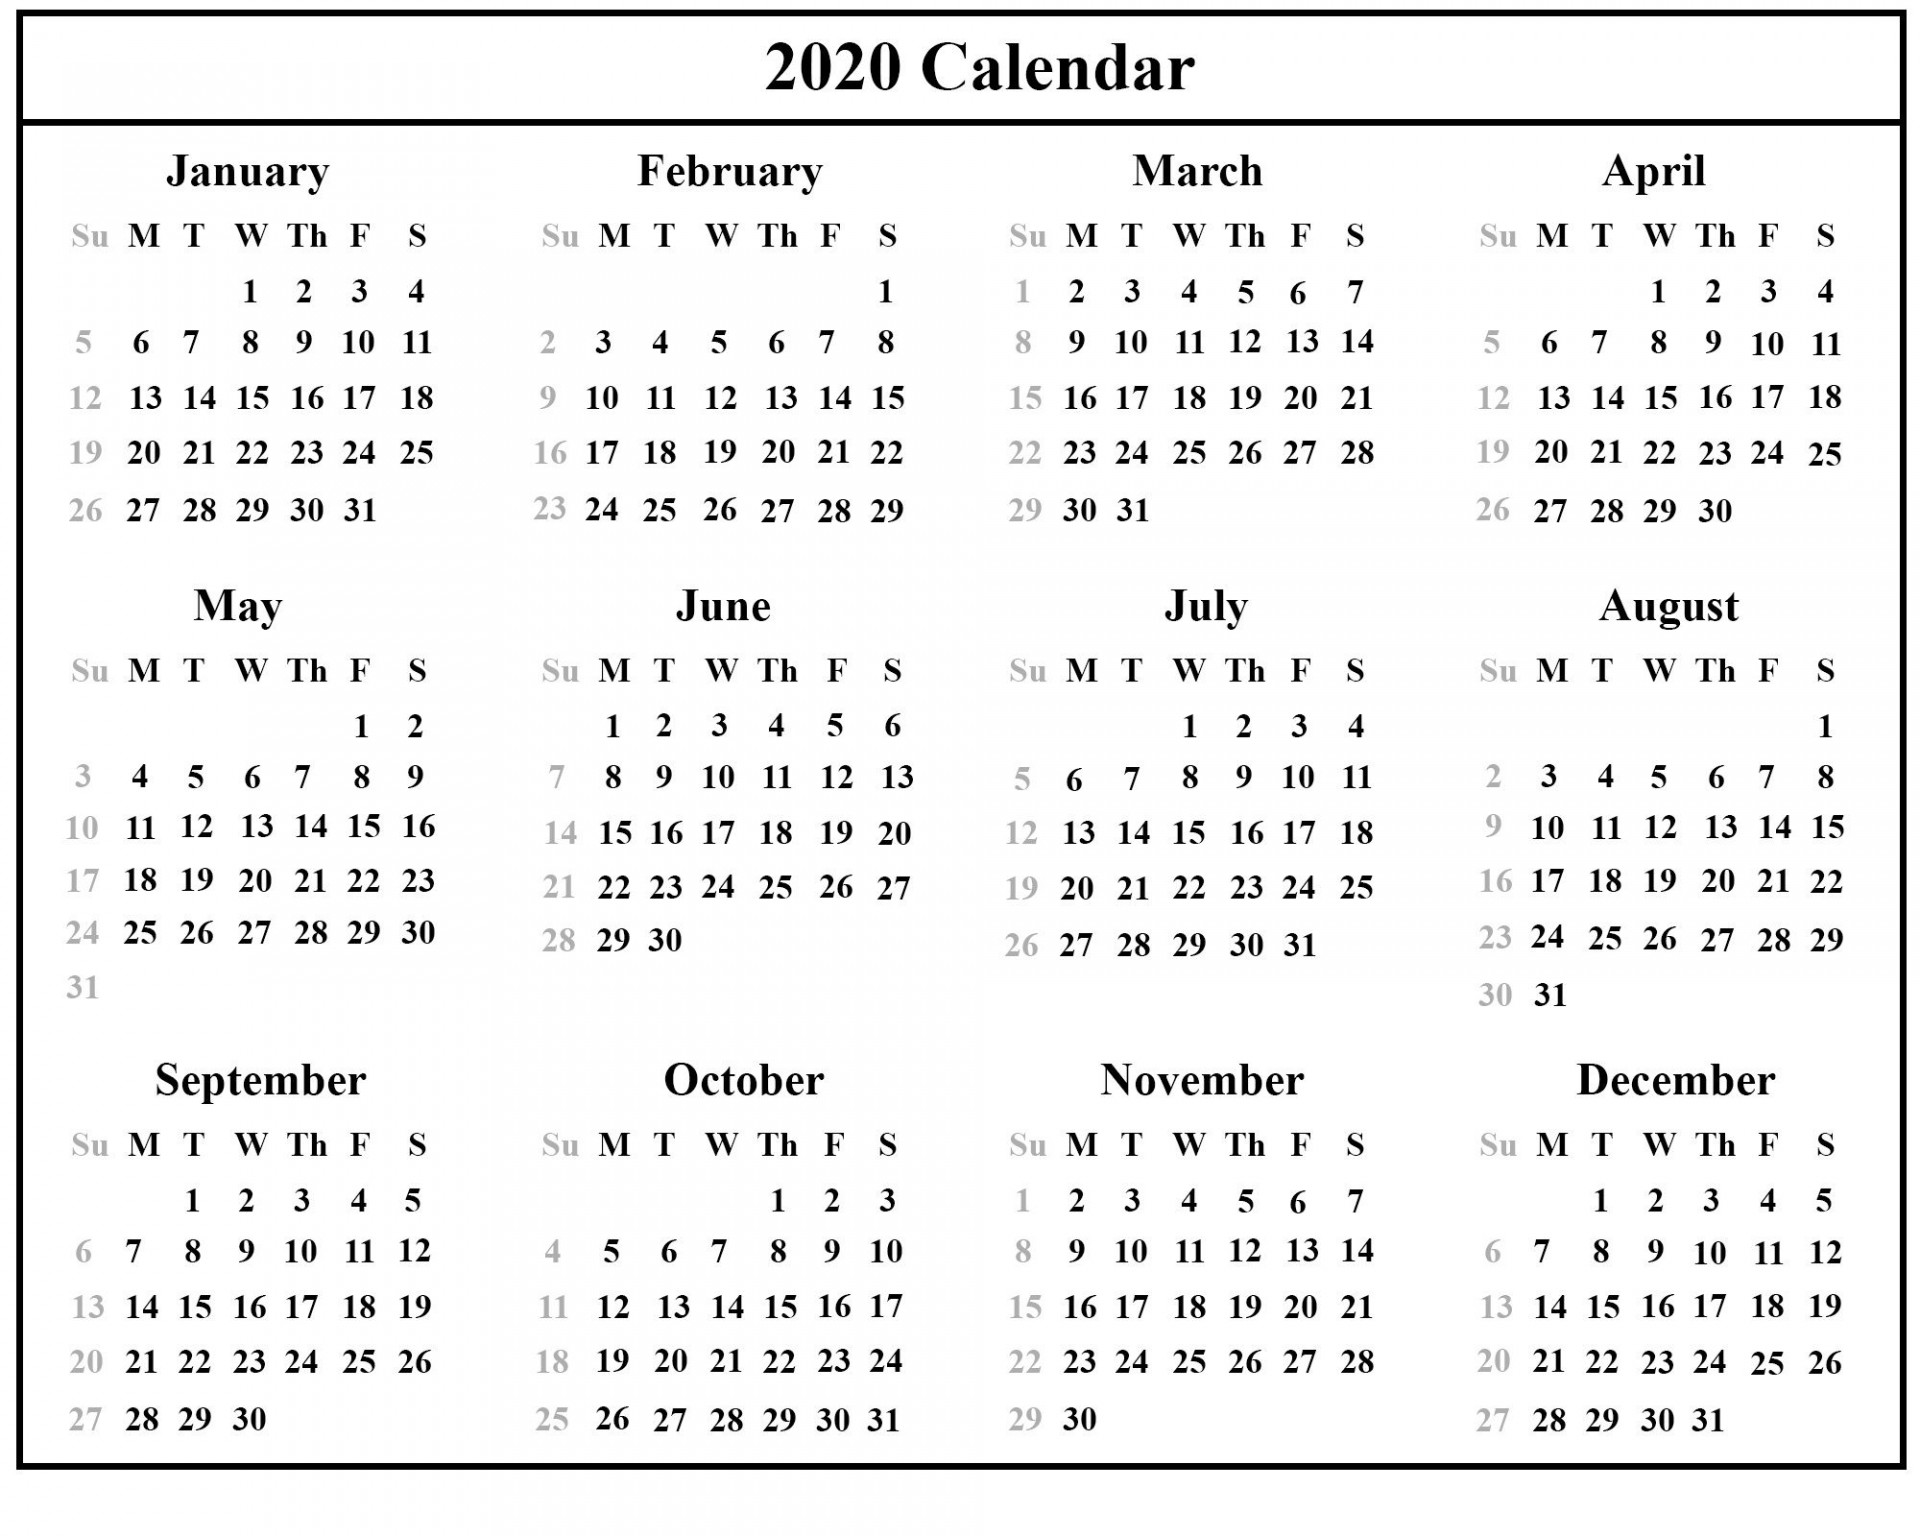 002 Stunning Calendar Template Free Download Design  2020 Powerpoint Table 2019 Malaysia1920